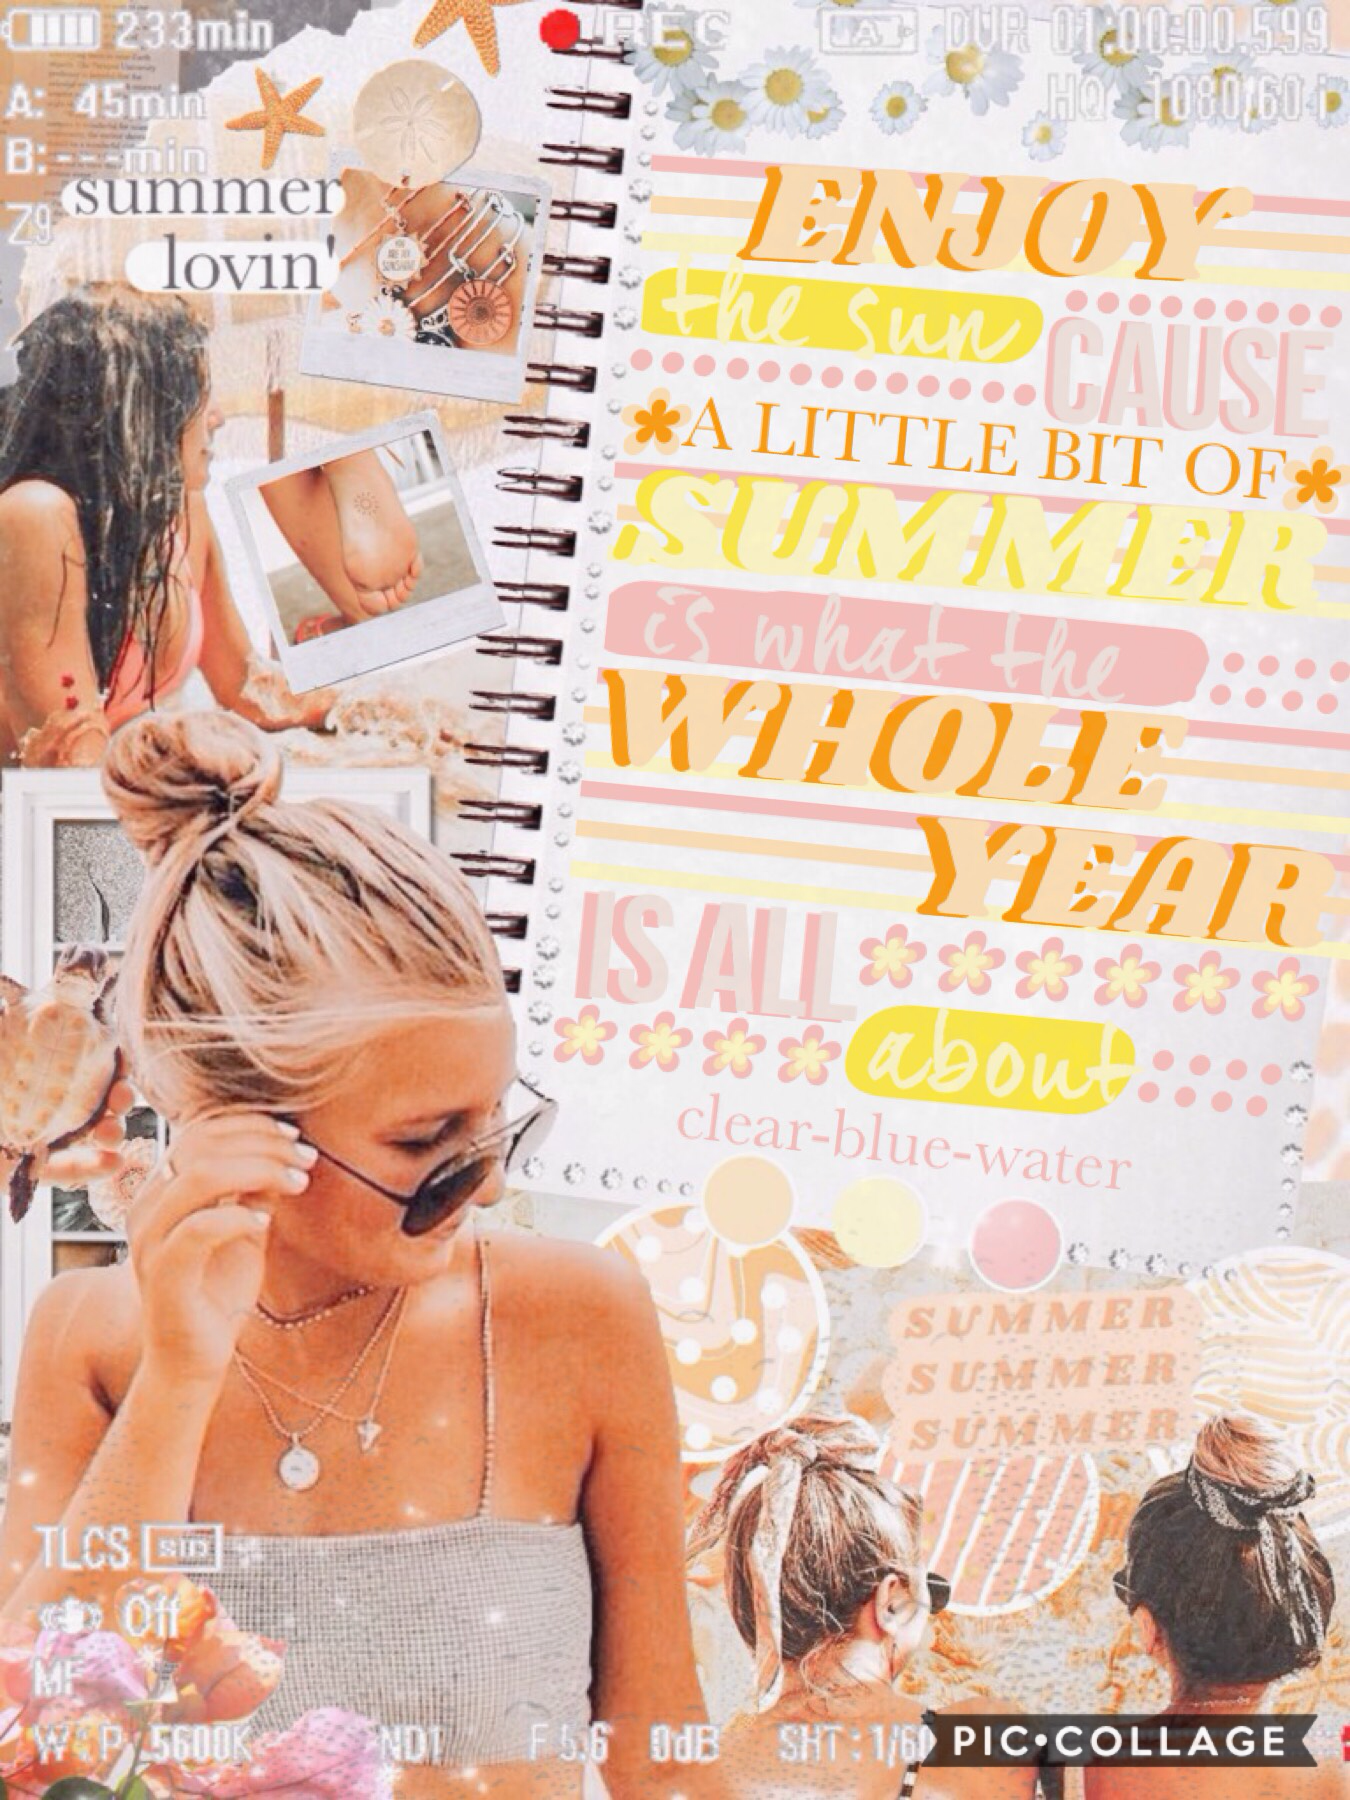 🏖T A P🏖 Another warm toned collage. This is inspired by my Pinterest @xxsarahelisexx so follow me for more like this. QOTD: What time do you usually wake up? AOTD: 6:30 on school days and 9:00-9:30 on weekends